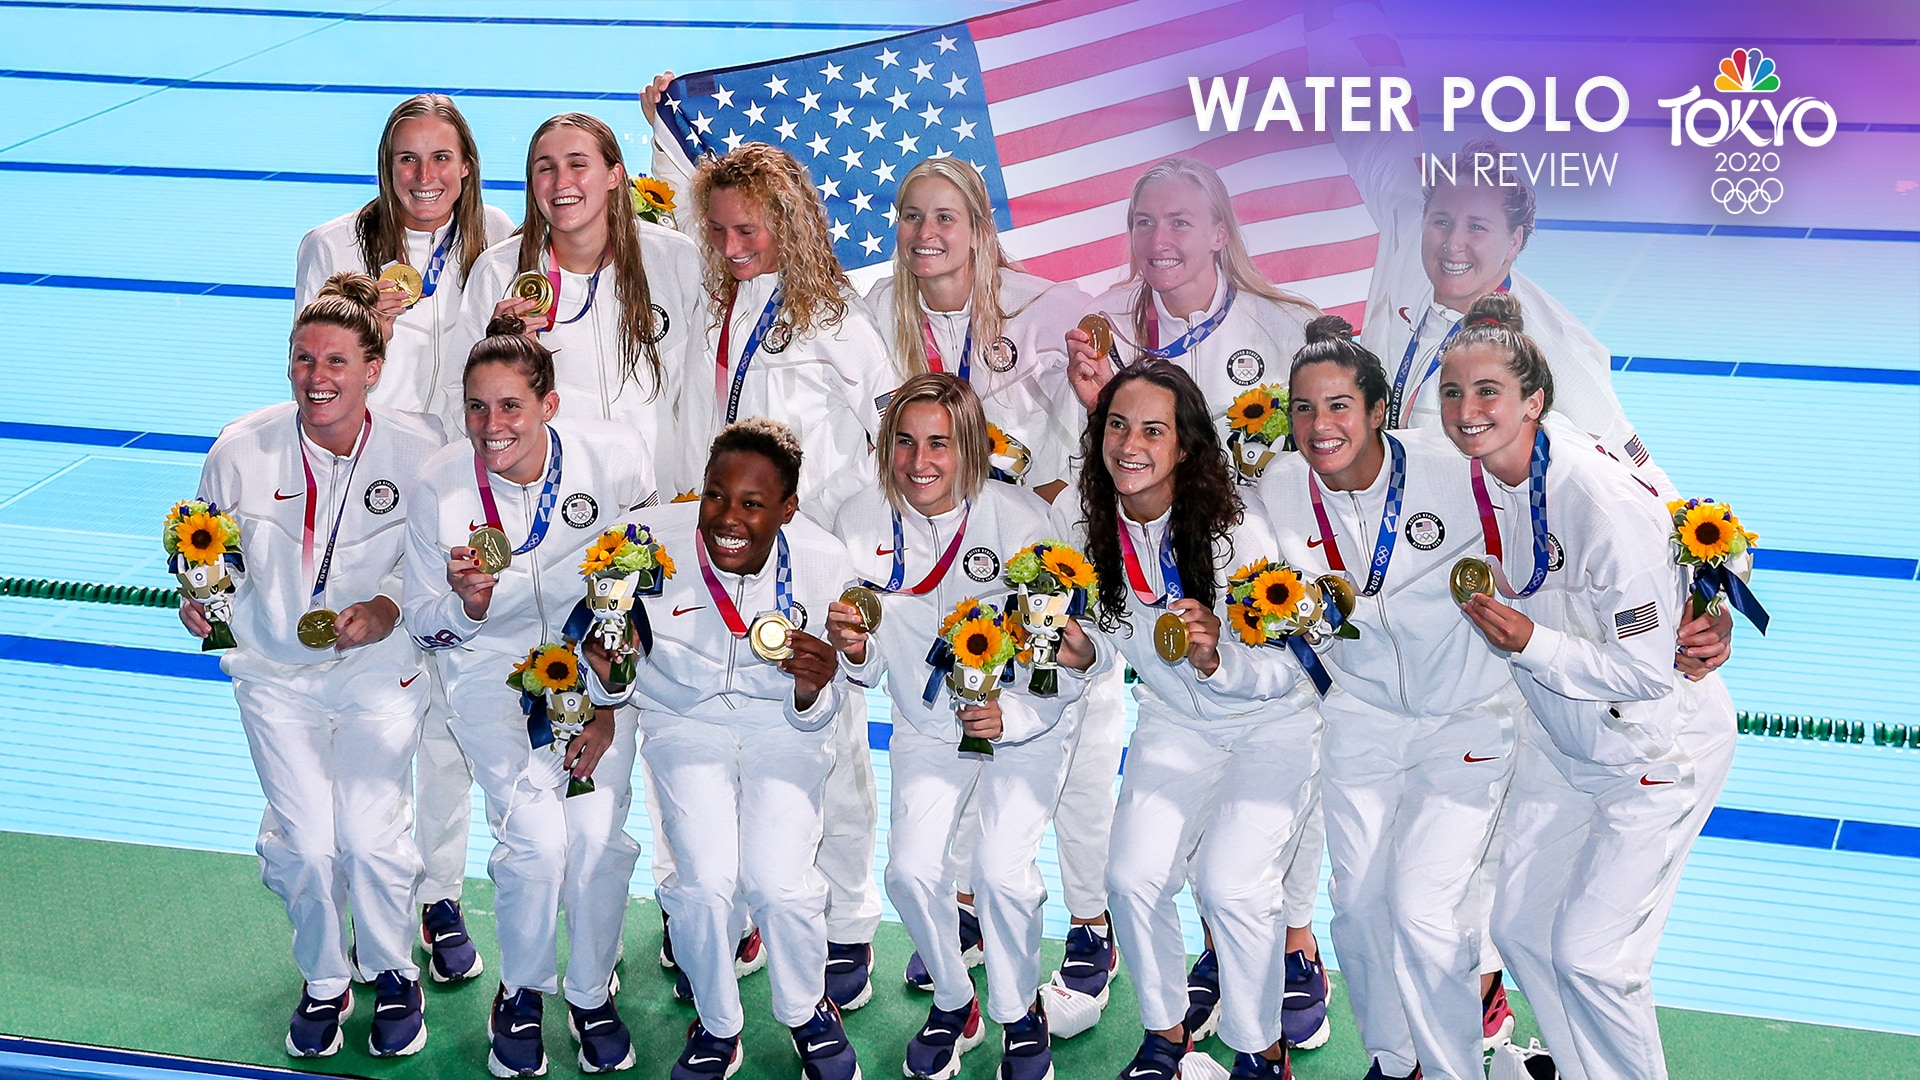 Image for Tokyo Olympics water polo in review: Team USA three-peats, a second straight gold for Serbia